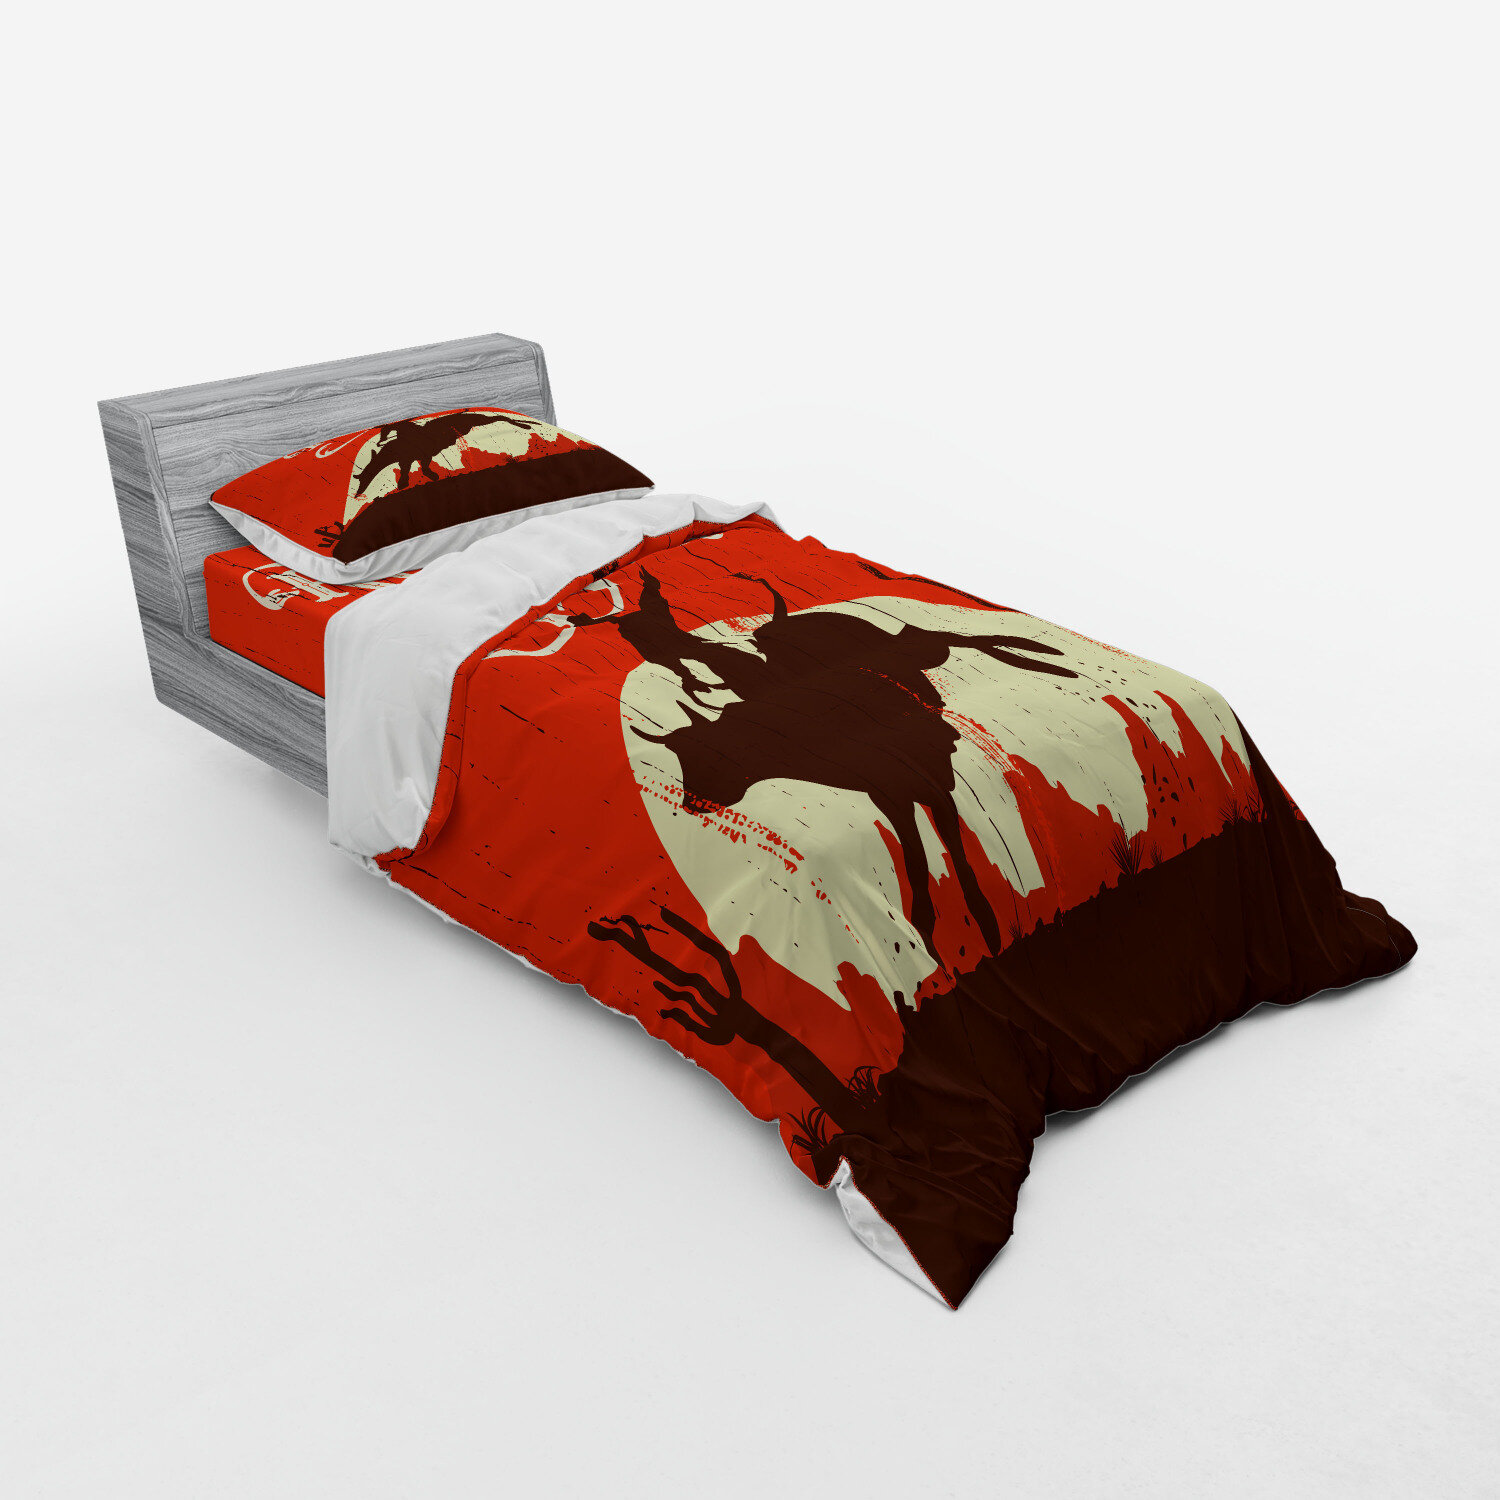 Home Garden Comforters Bedding Sets Sheets Pillowcases Set 7 Pc Chocolate Rodeo Cow Print King Comforter Eo Executiveoptical Com